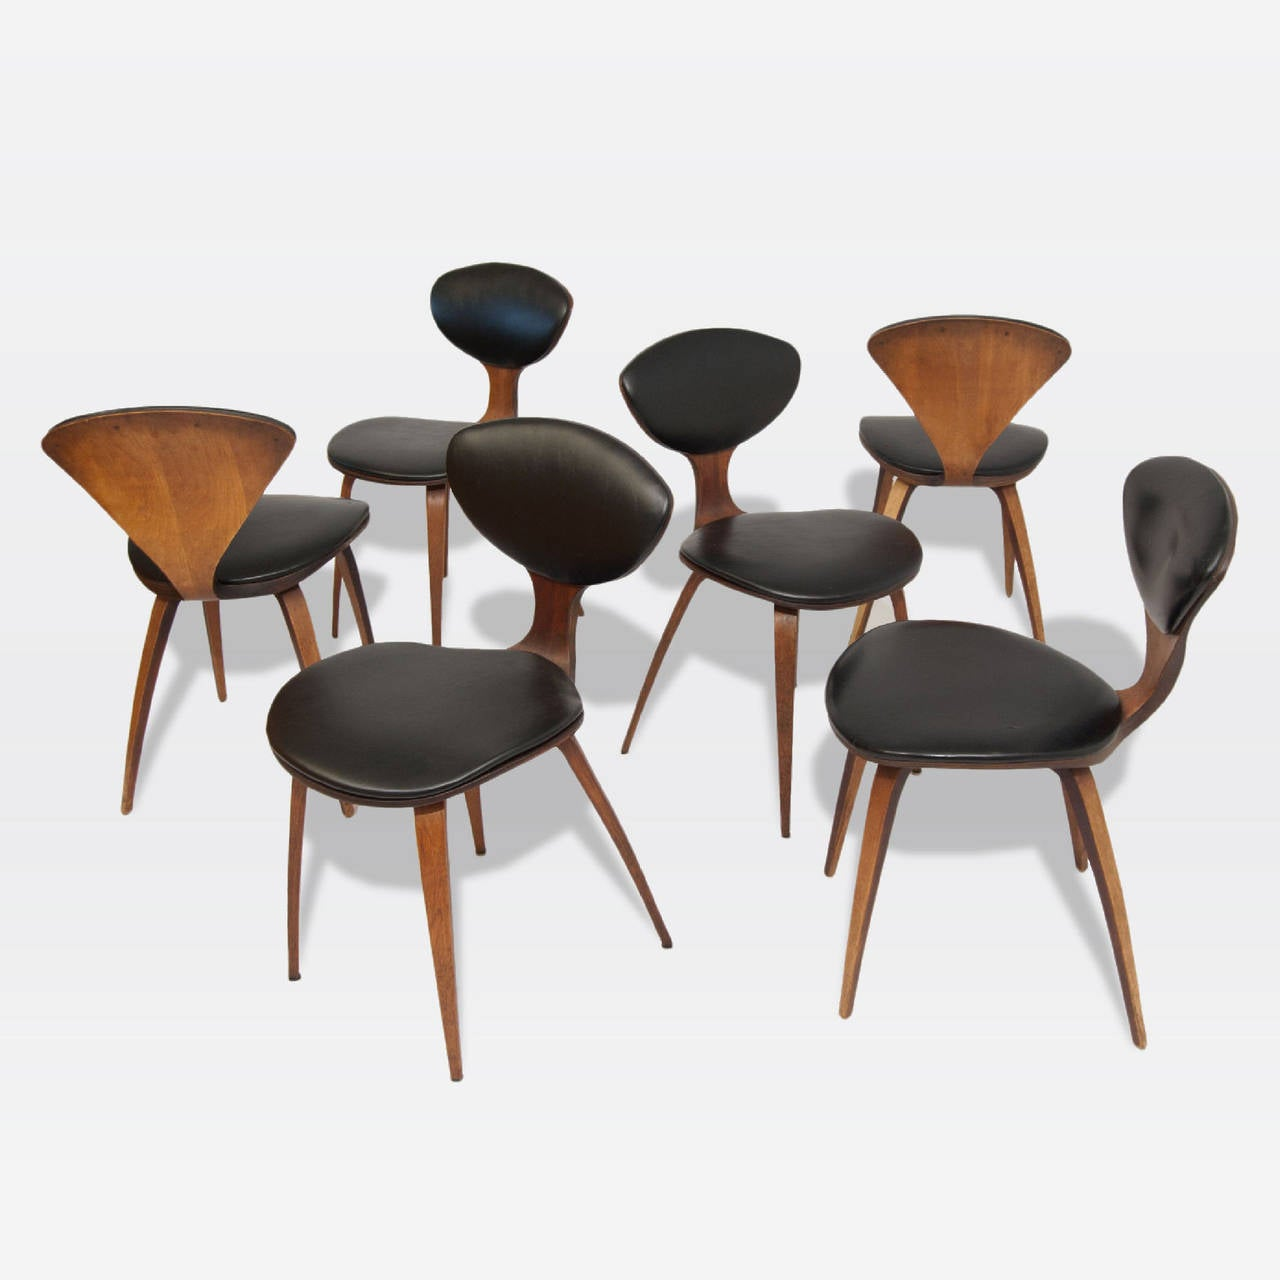 Set of six walnut side chairs with black vinyl upholstered seats. Designed by Norman Cherner, produced by Plycraft.